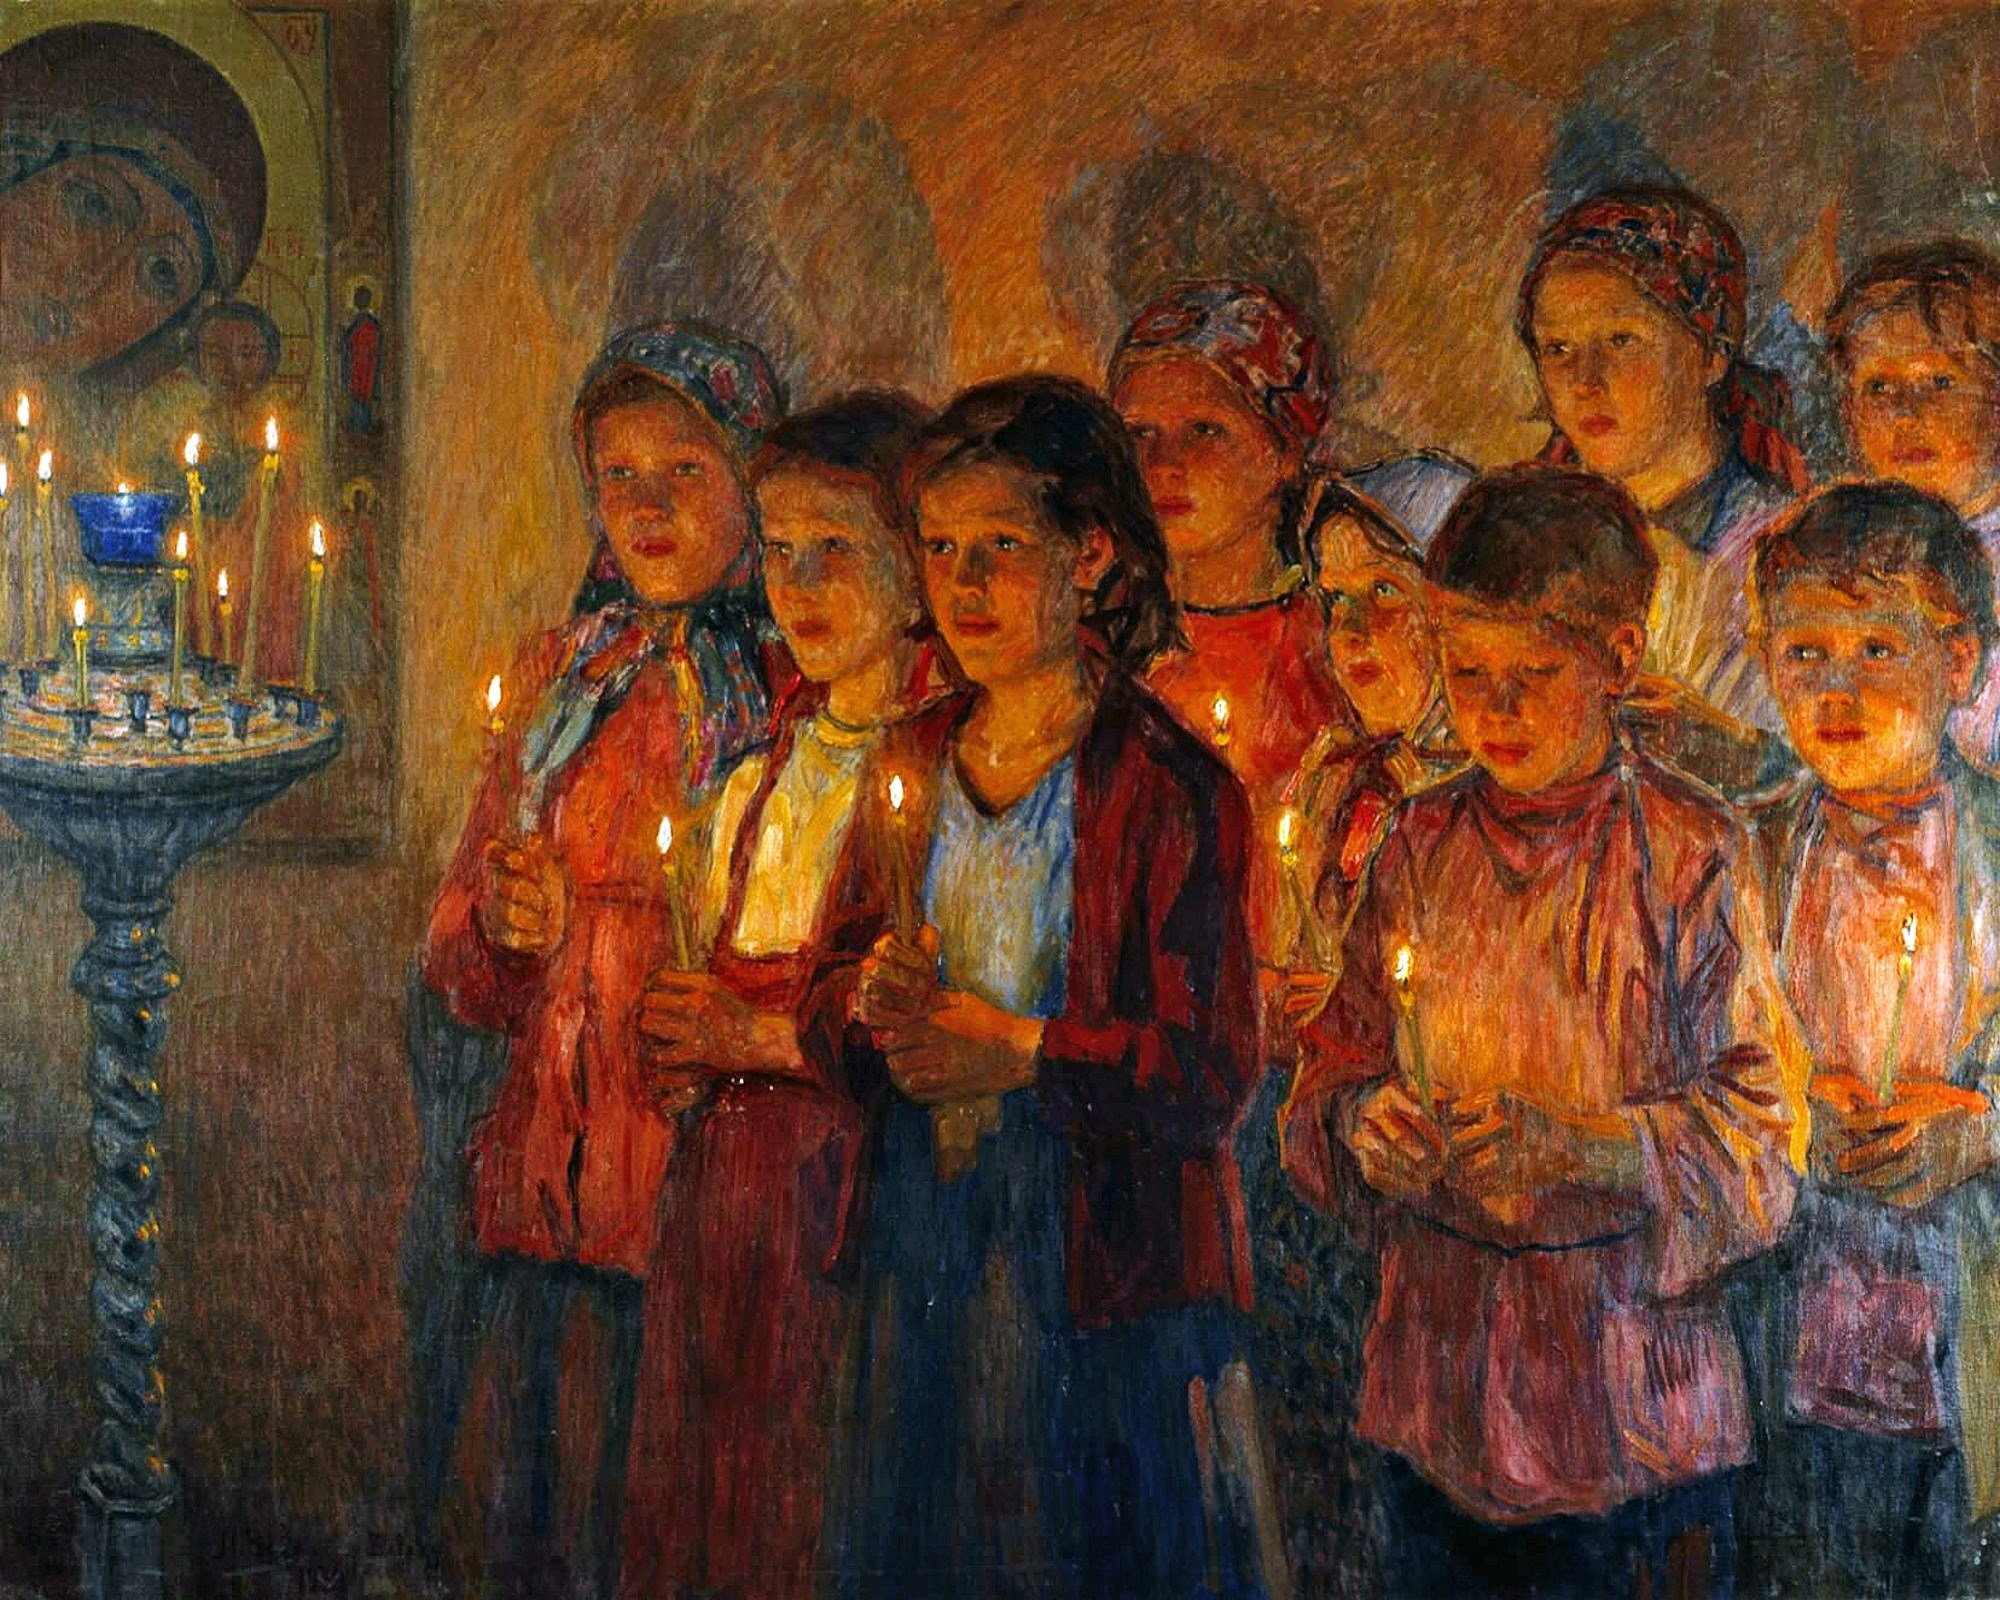 00 Nikolai Bogdanov-Belsky. In Church. 1939